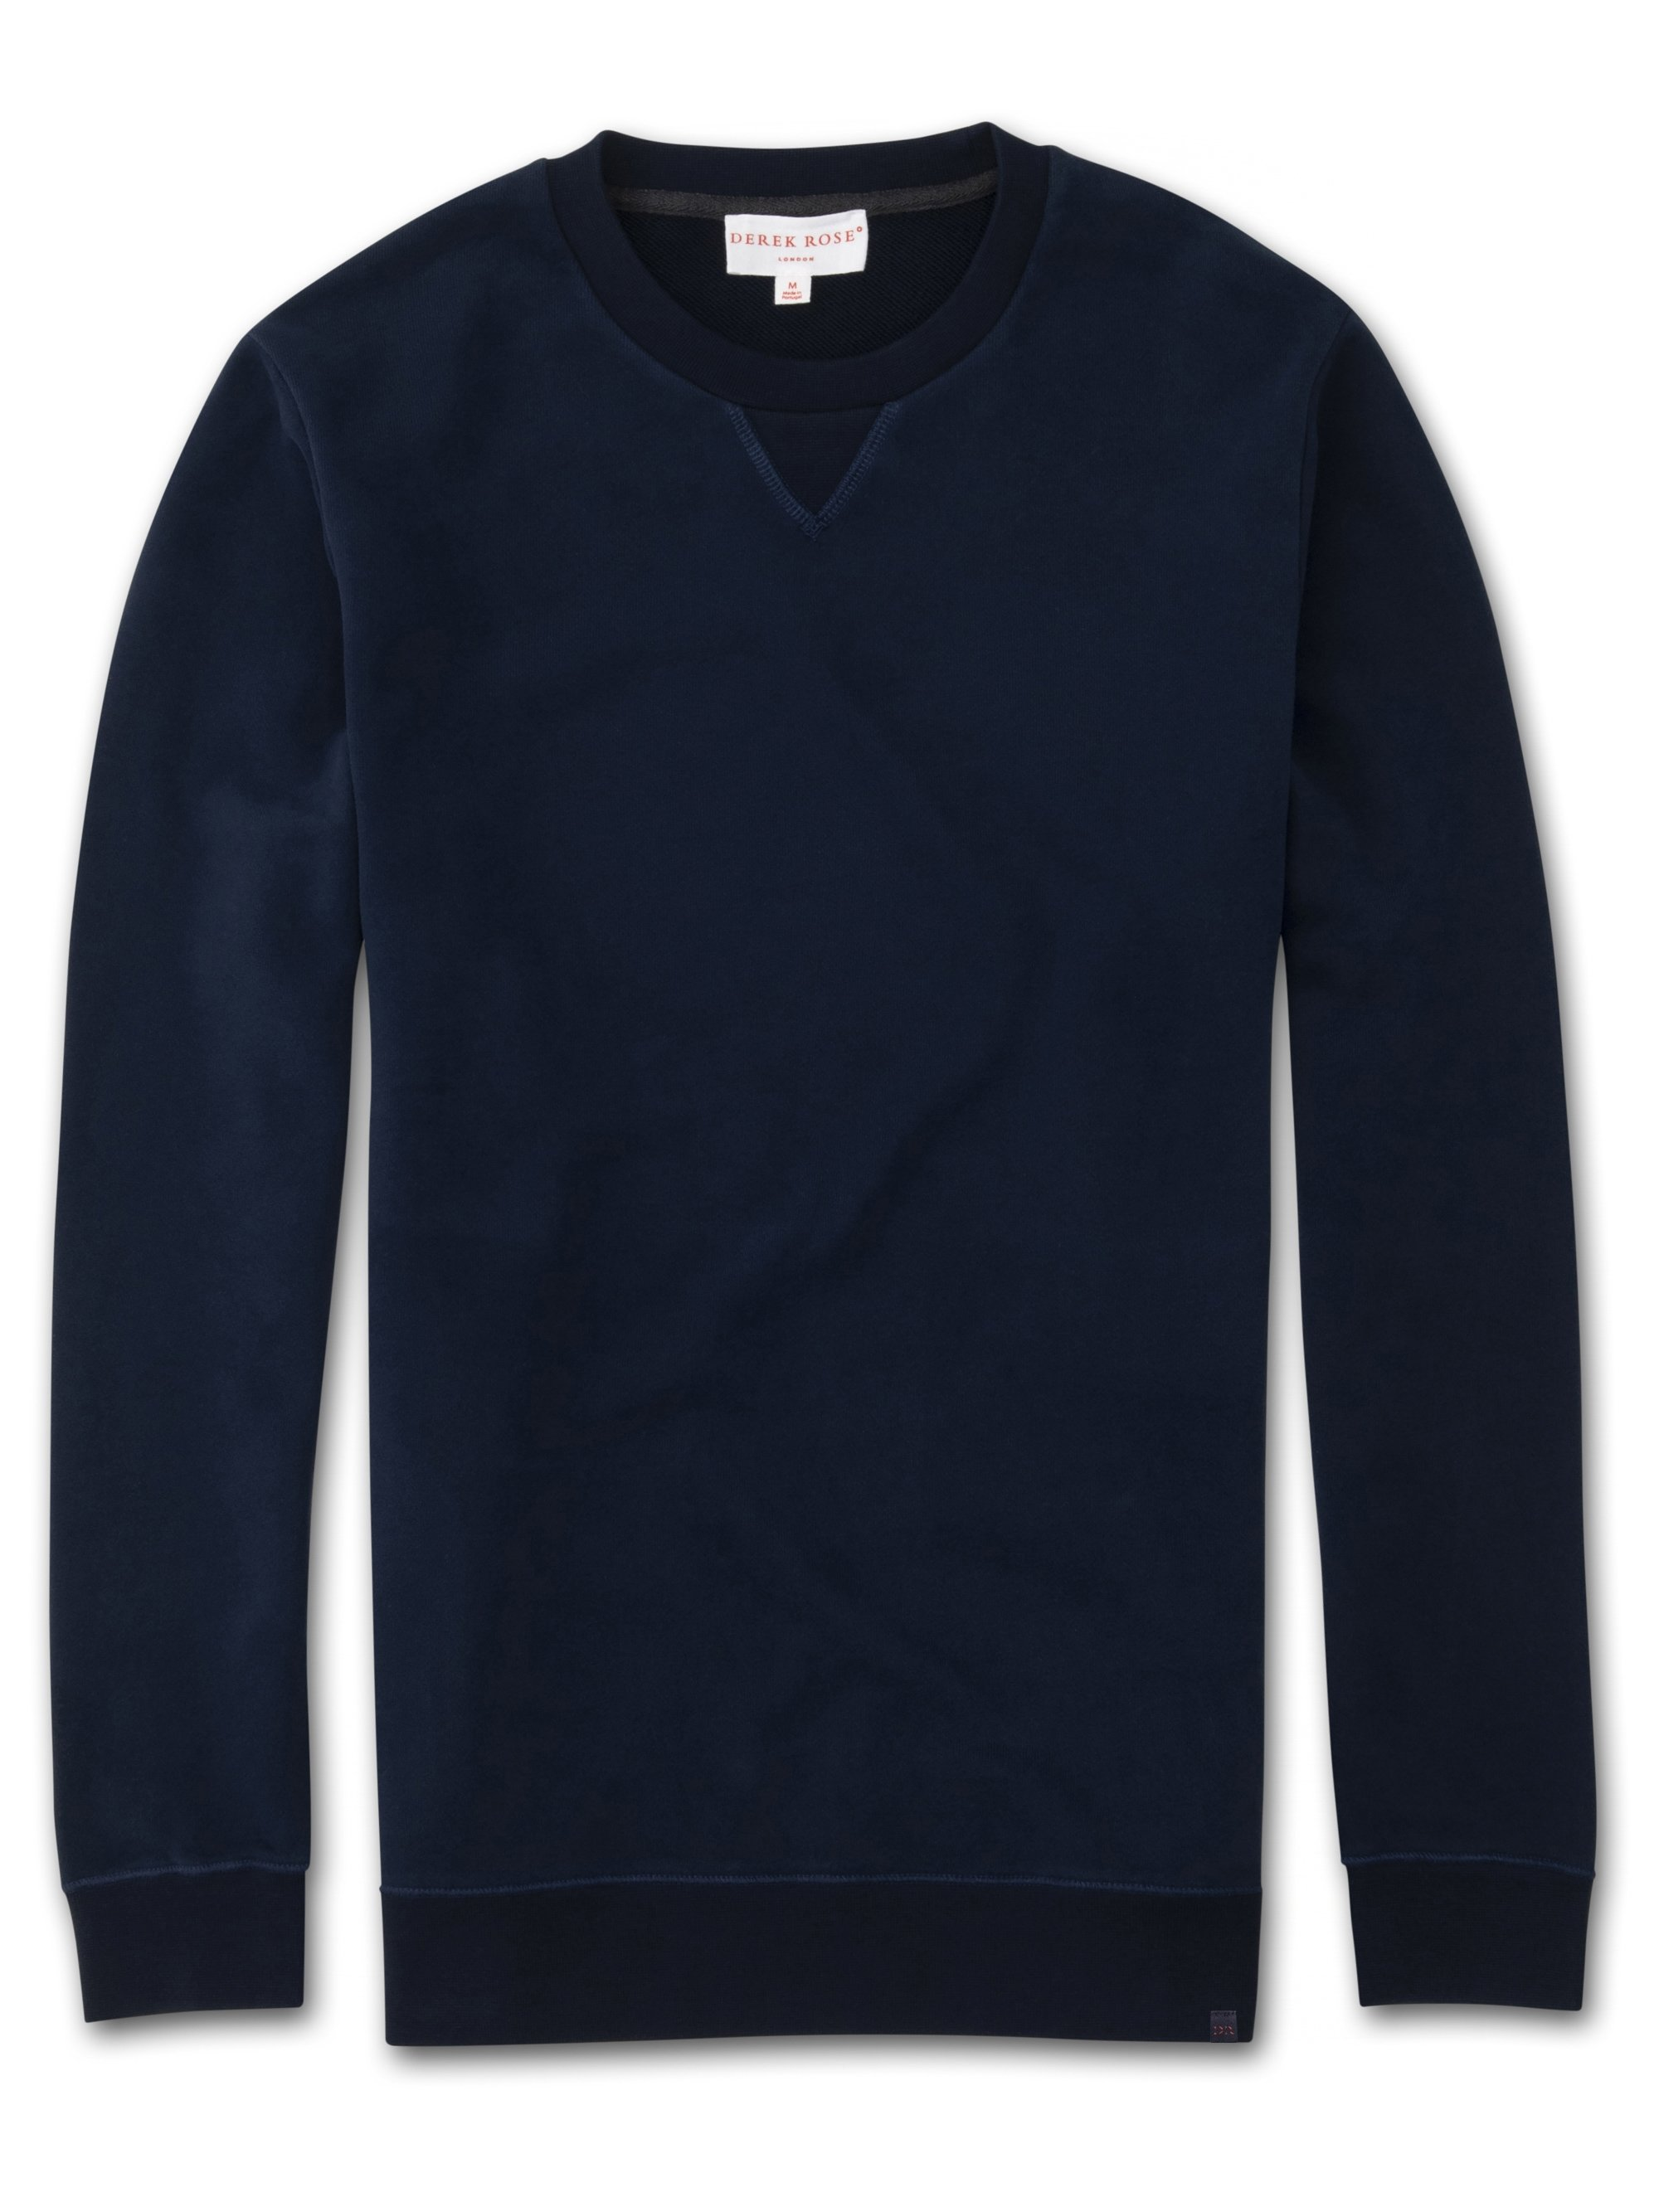 Men's Sweatshirt Devon 2 Loopback Cotton Navy